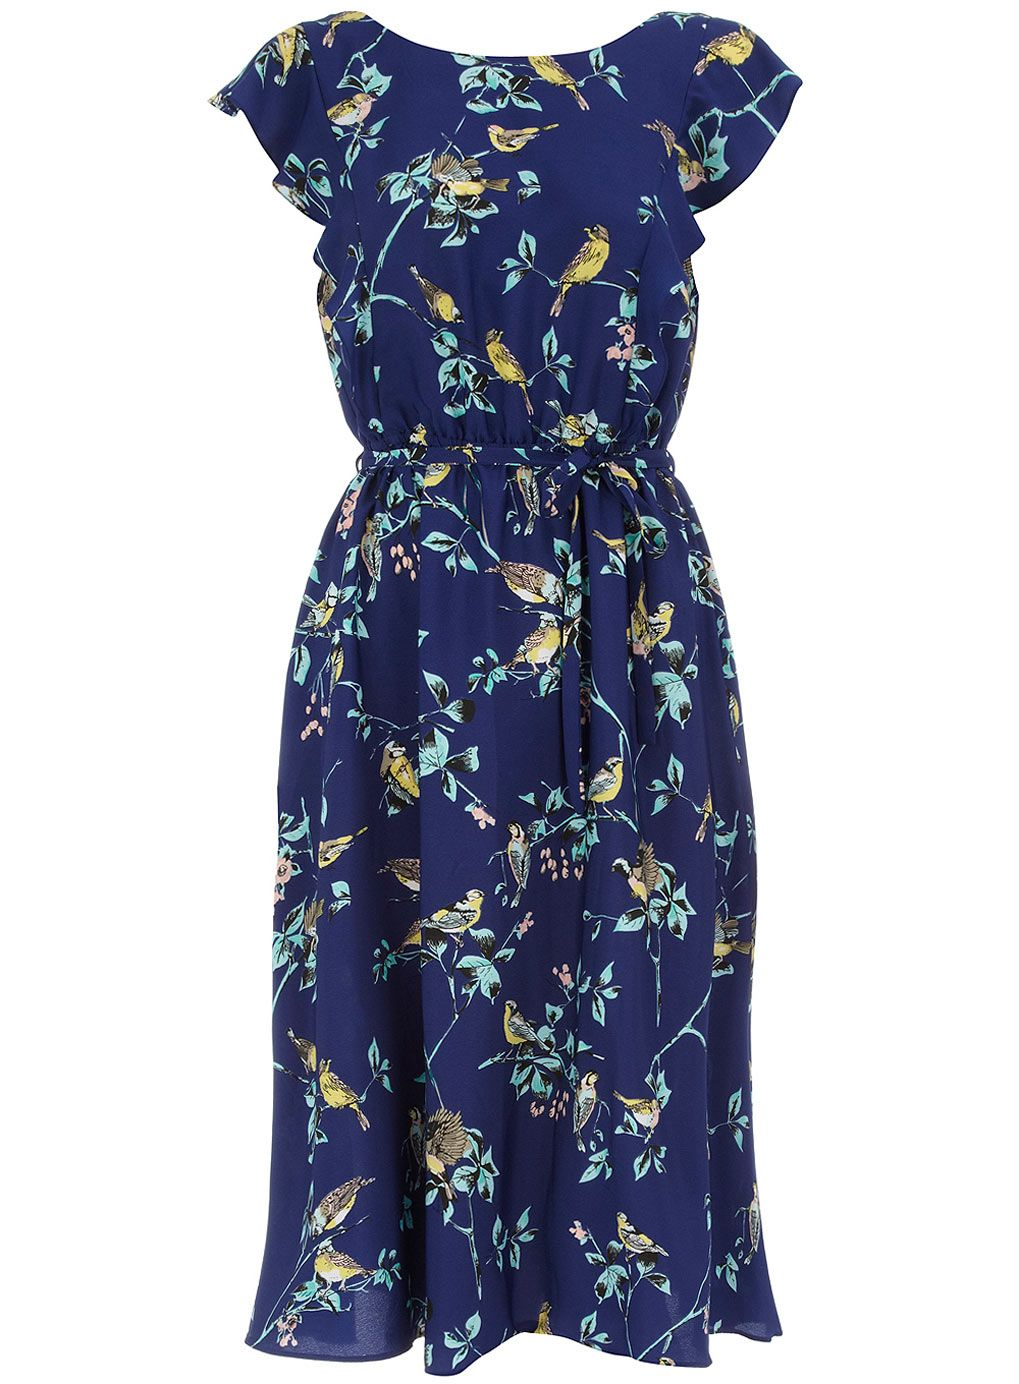 2018 For Sale For Cheap For Sale Dorothy Perkins Womens **Only Bird Print Tea Dress- 4cW2pe